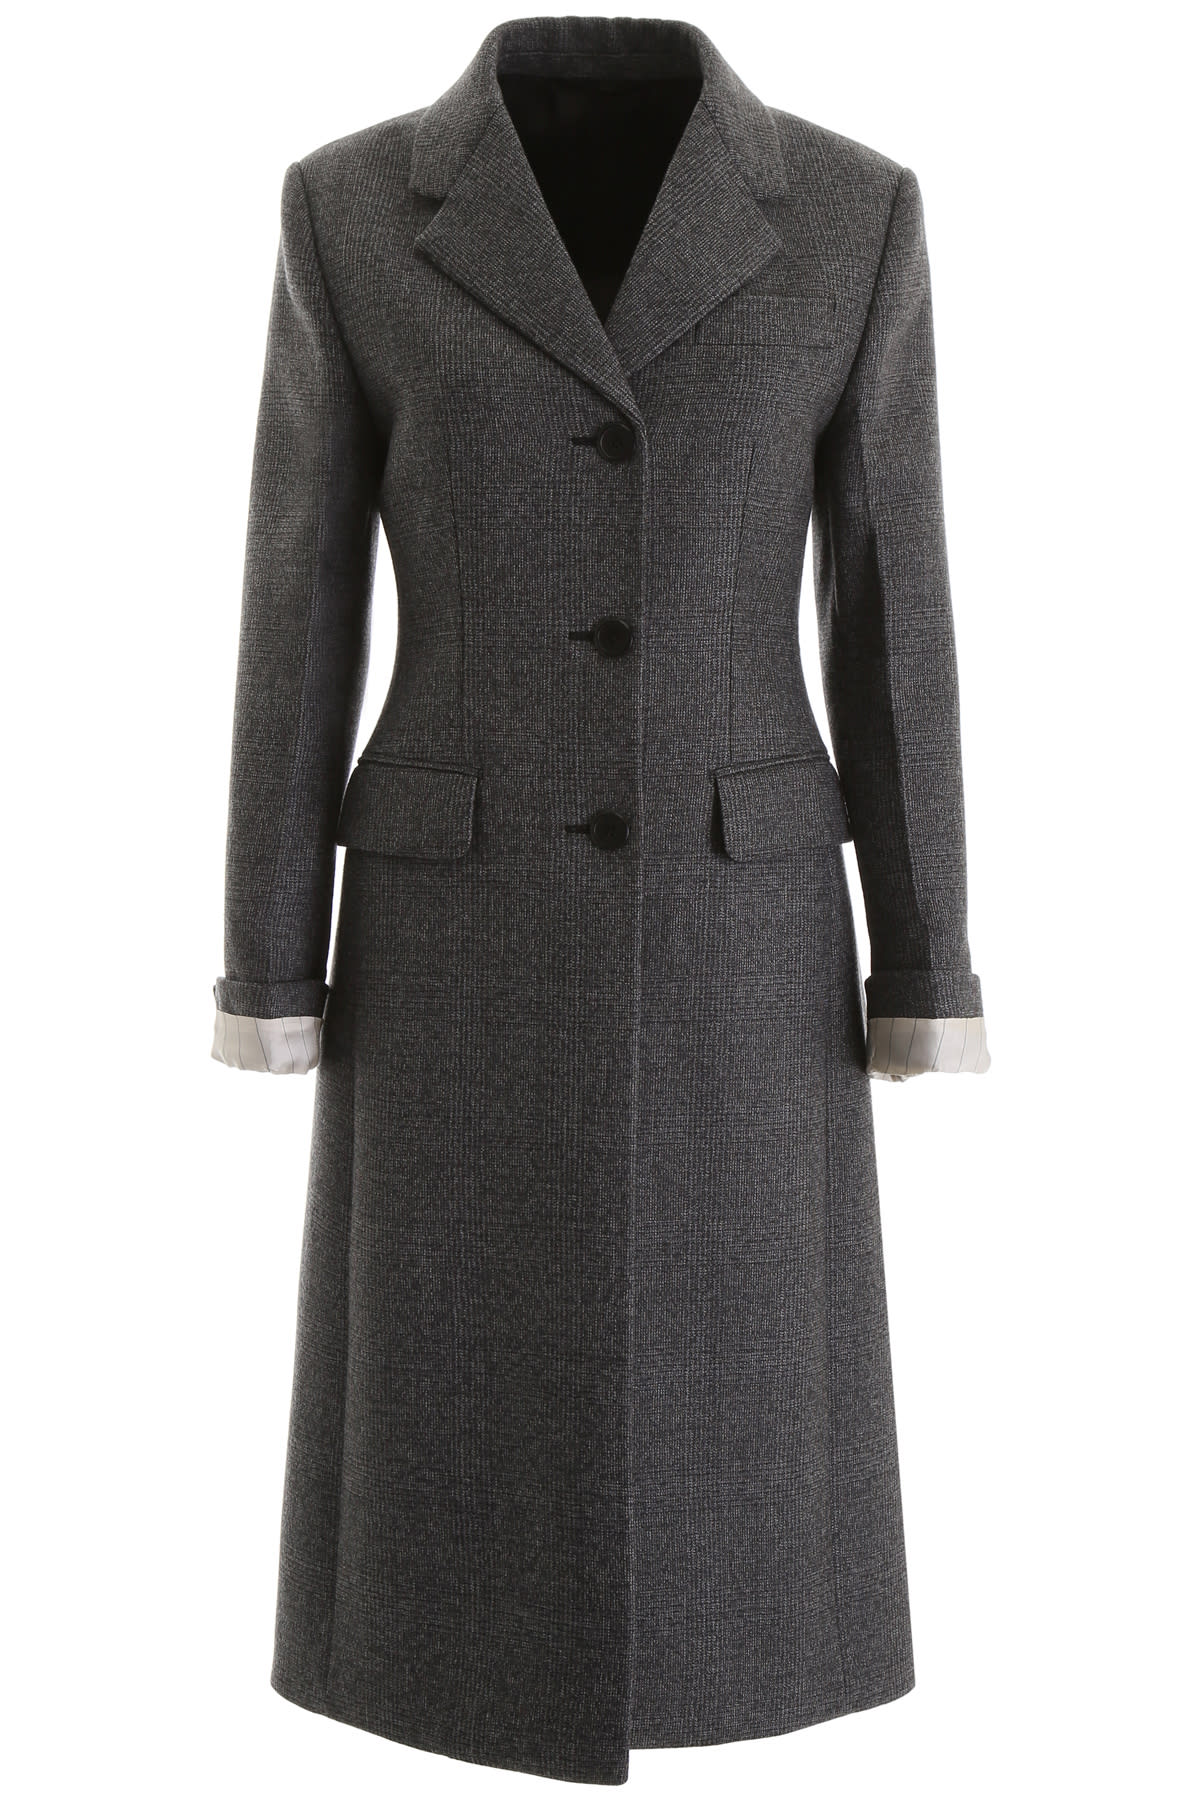 Prada Prince Of Wales Coat